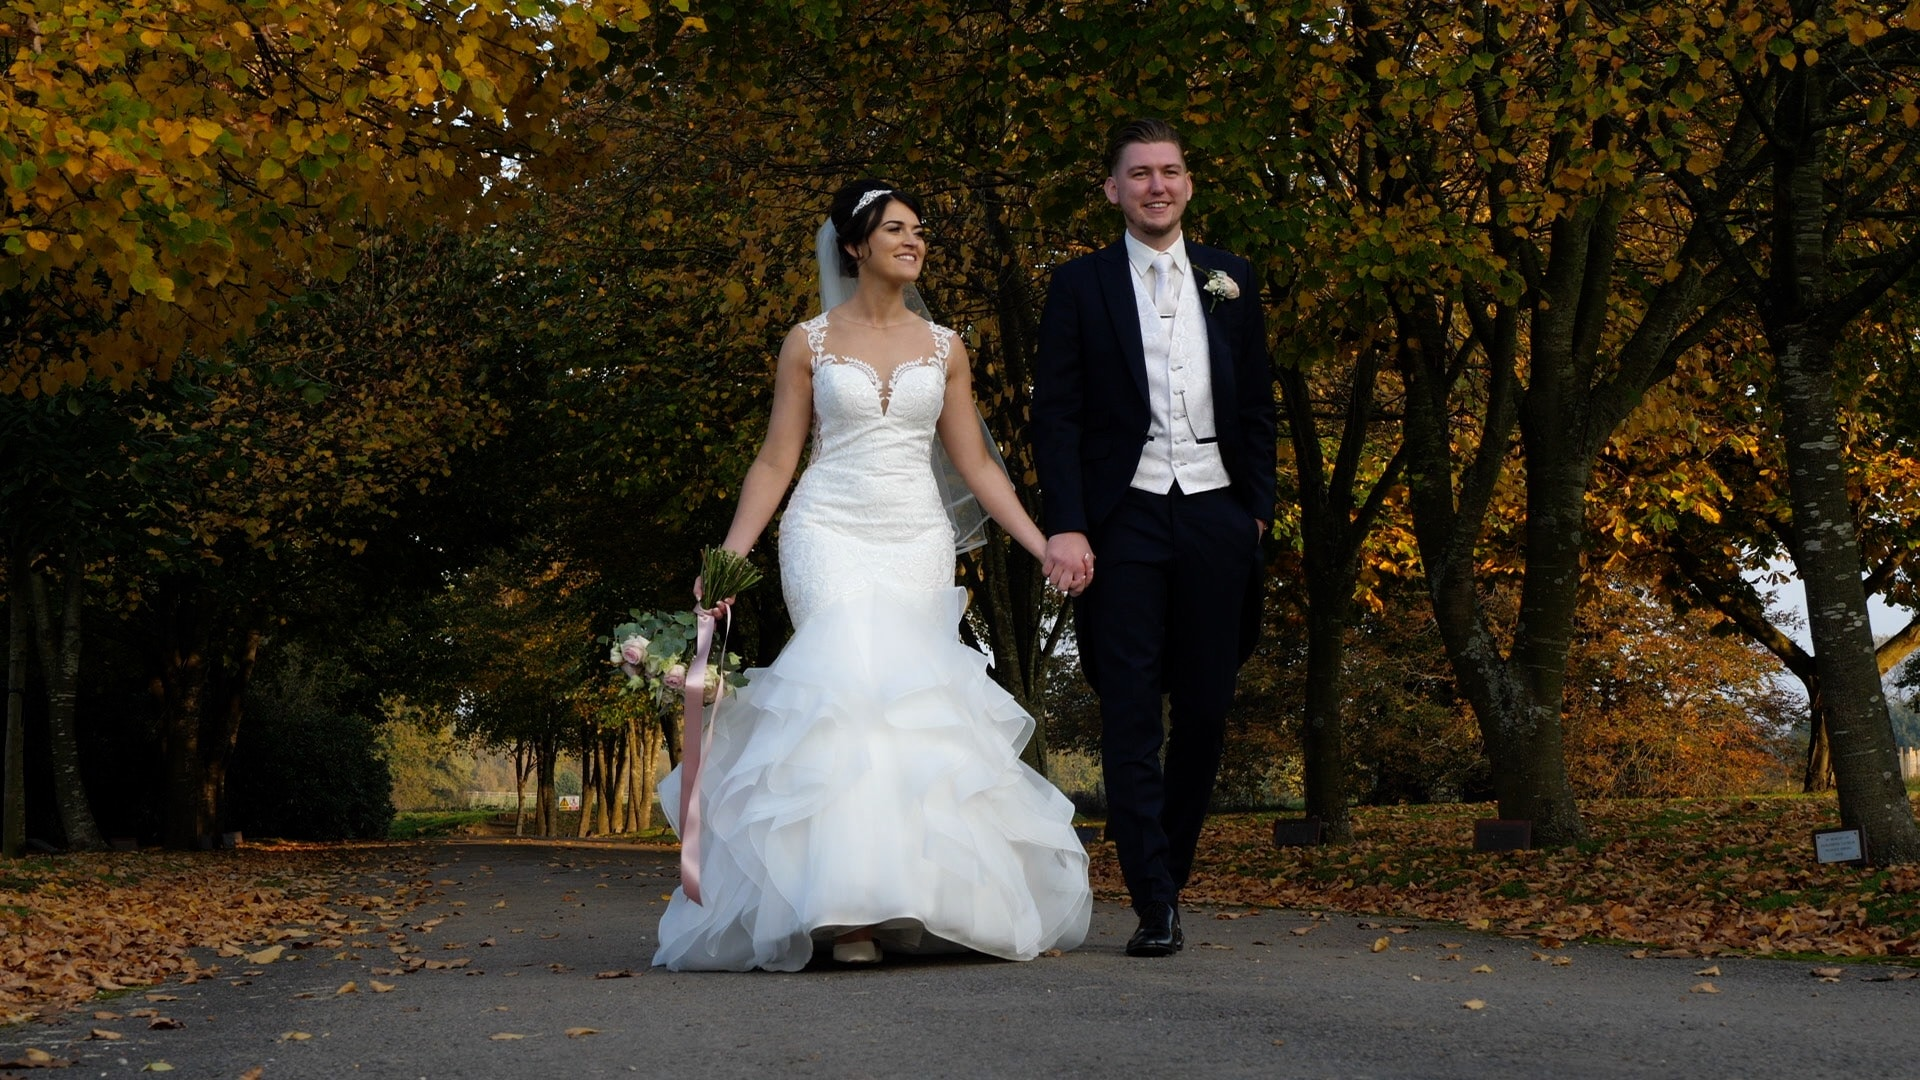 Bride and groom walking holding hands - Wedding Videographer for Intimate or Small Weddings